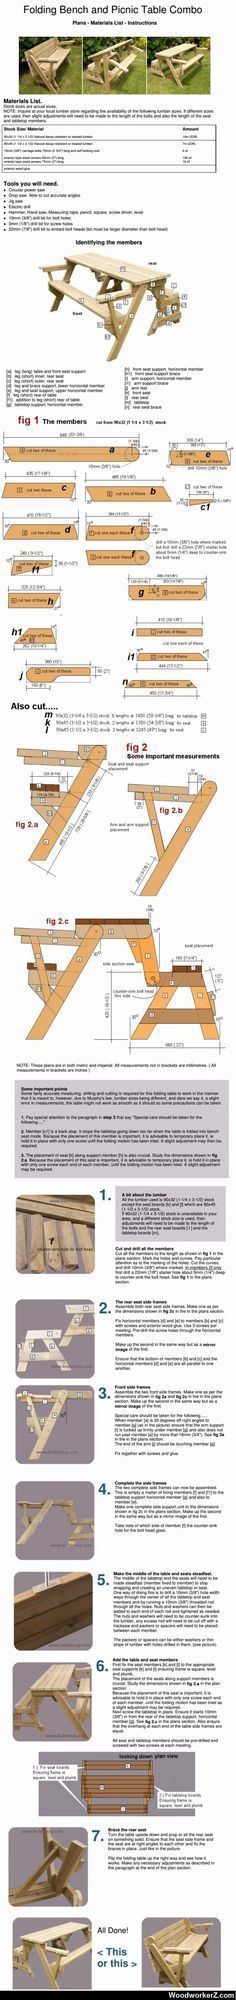 Folding Bench and Picnic Table Combo - think I may have found my first project for my killer new mitre saw!!!